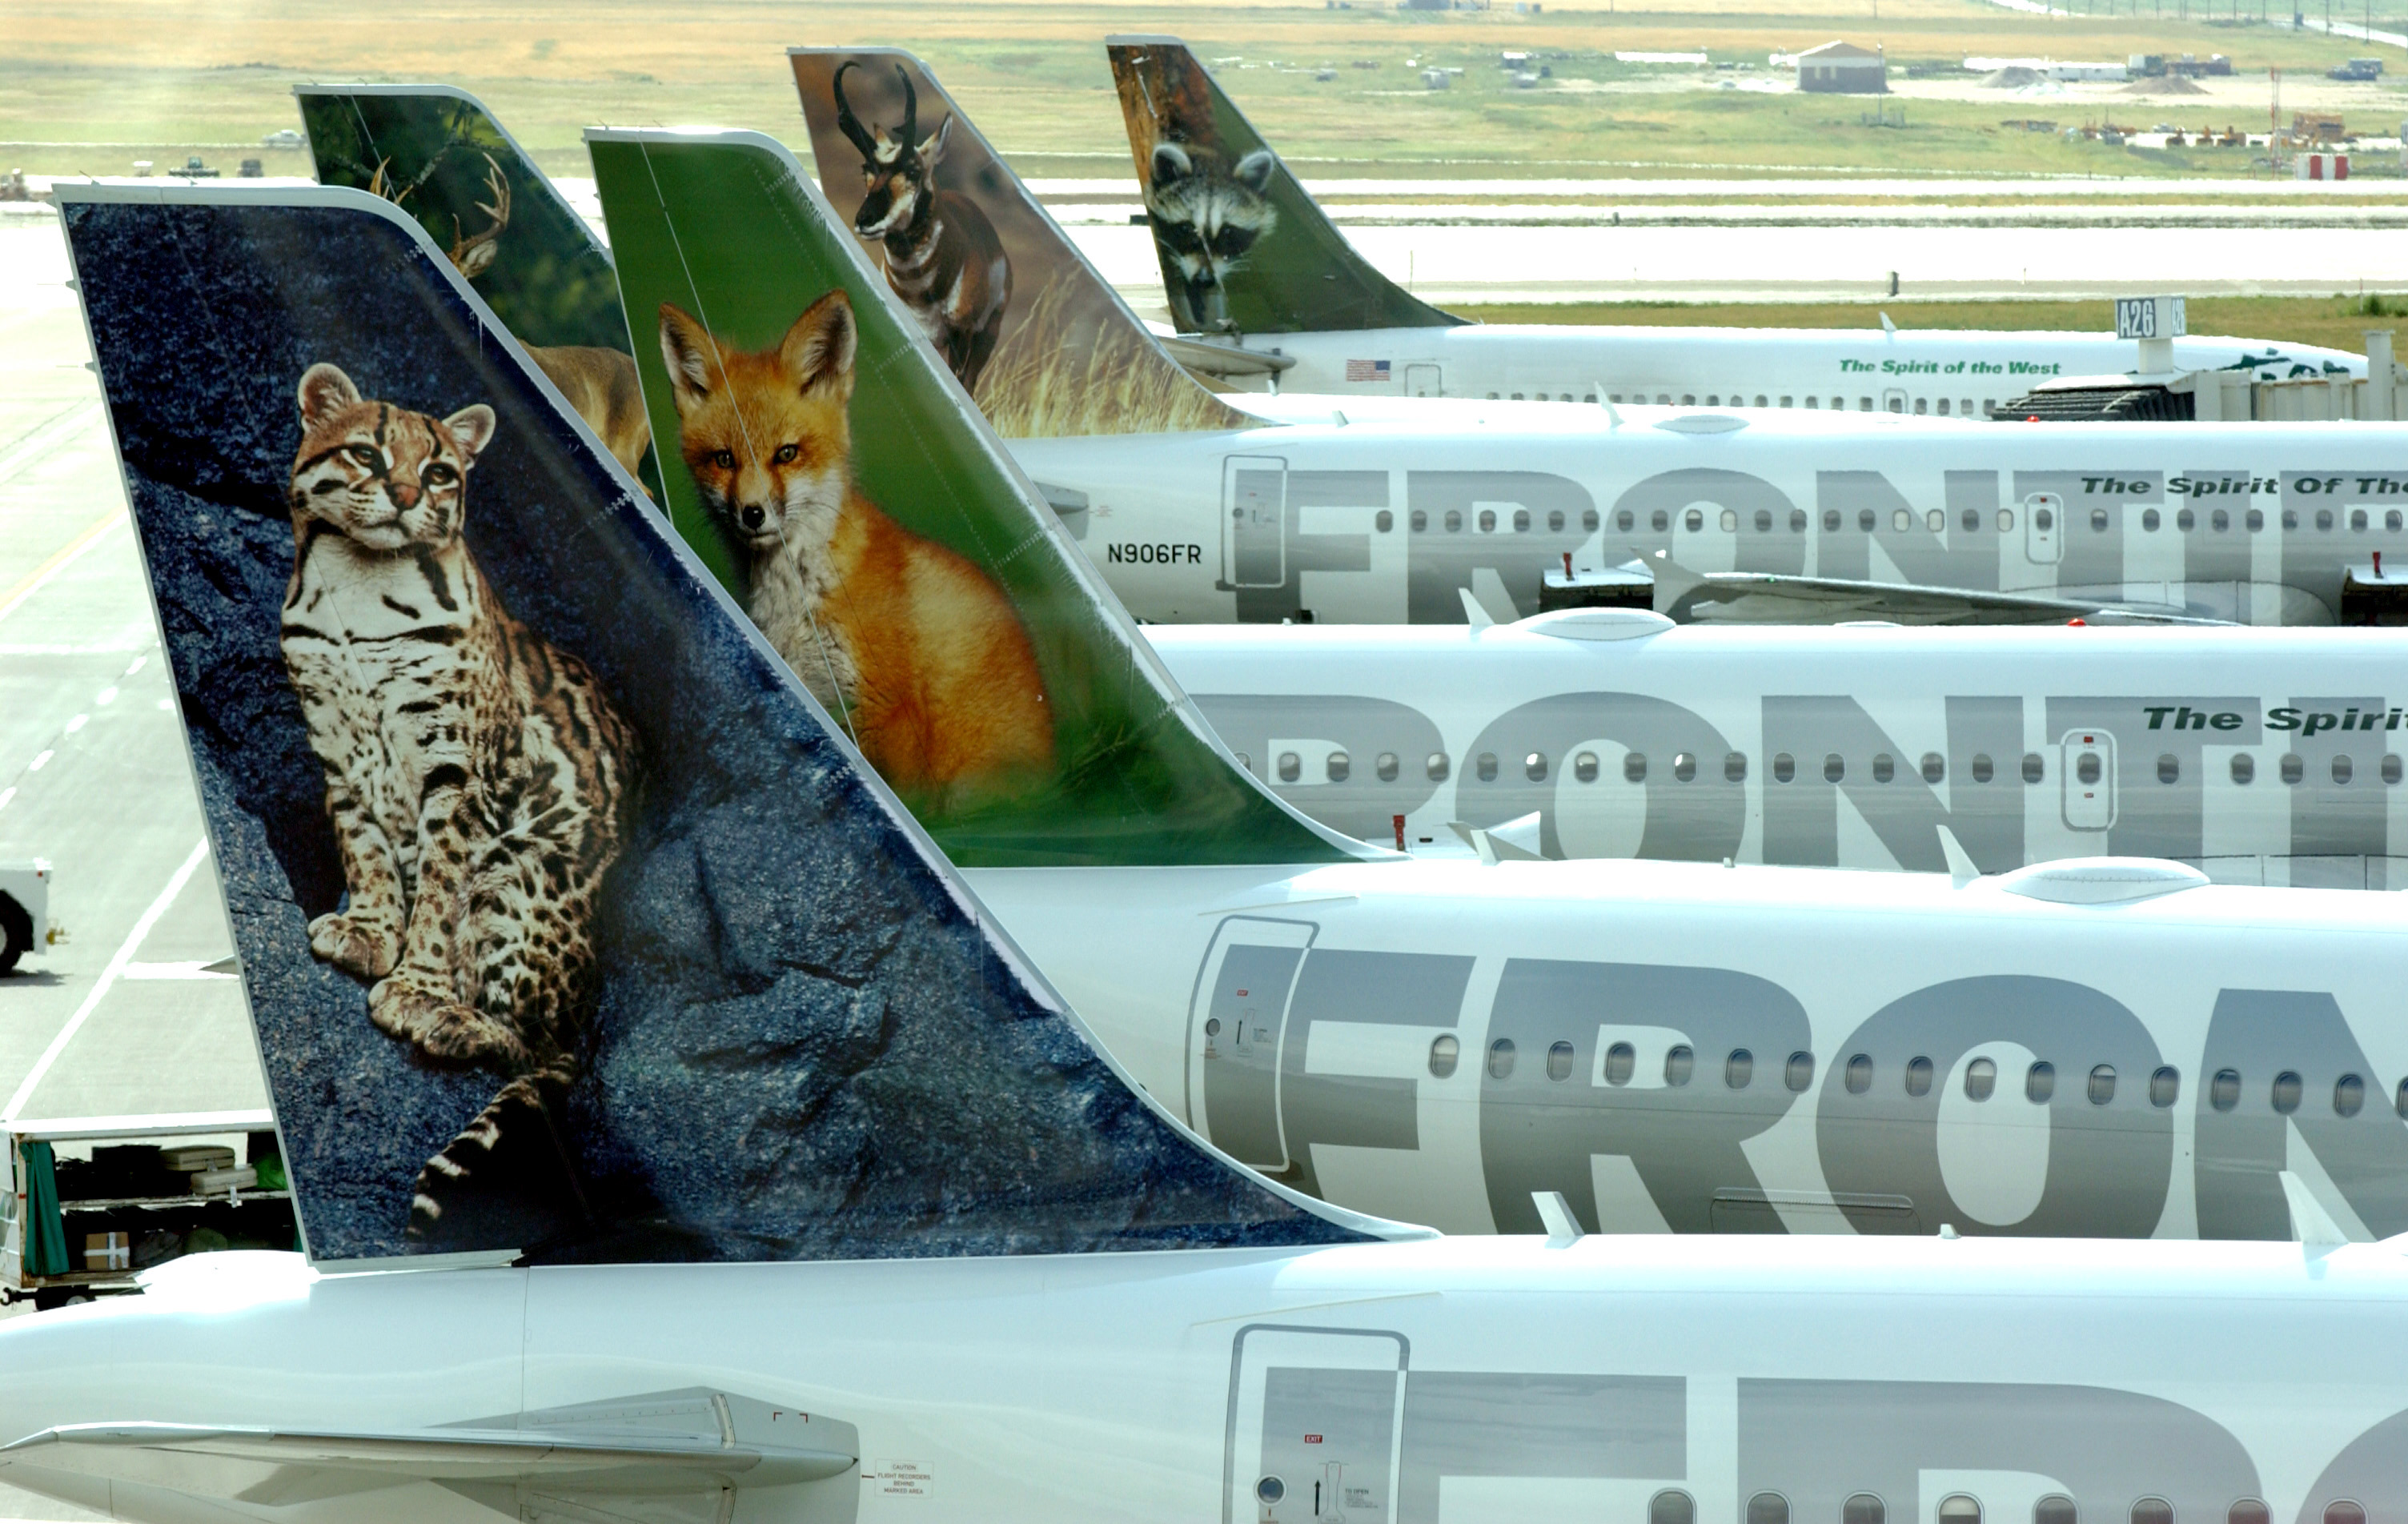 Low-fare carrier Frontier Airlines to start flying out of